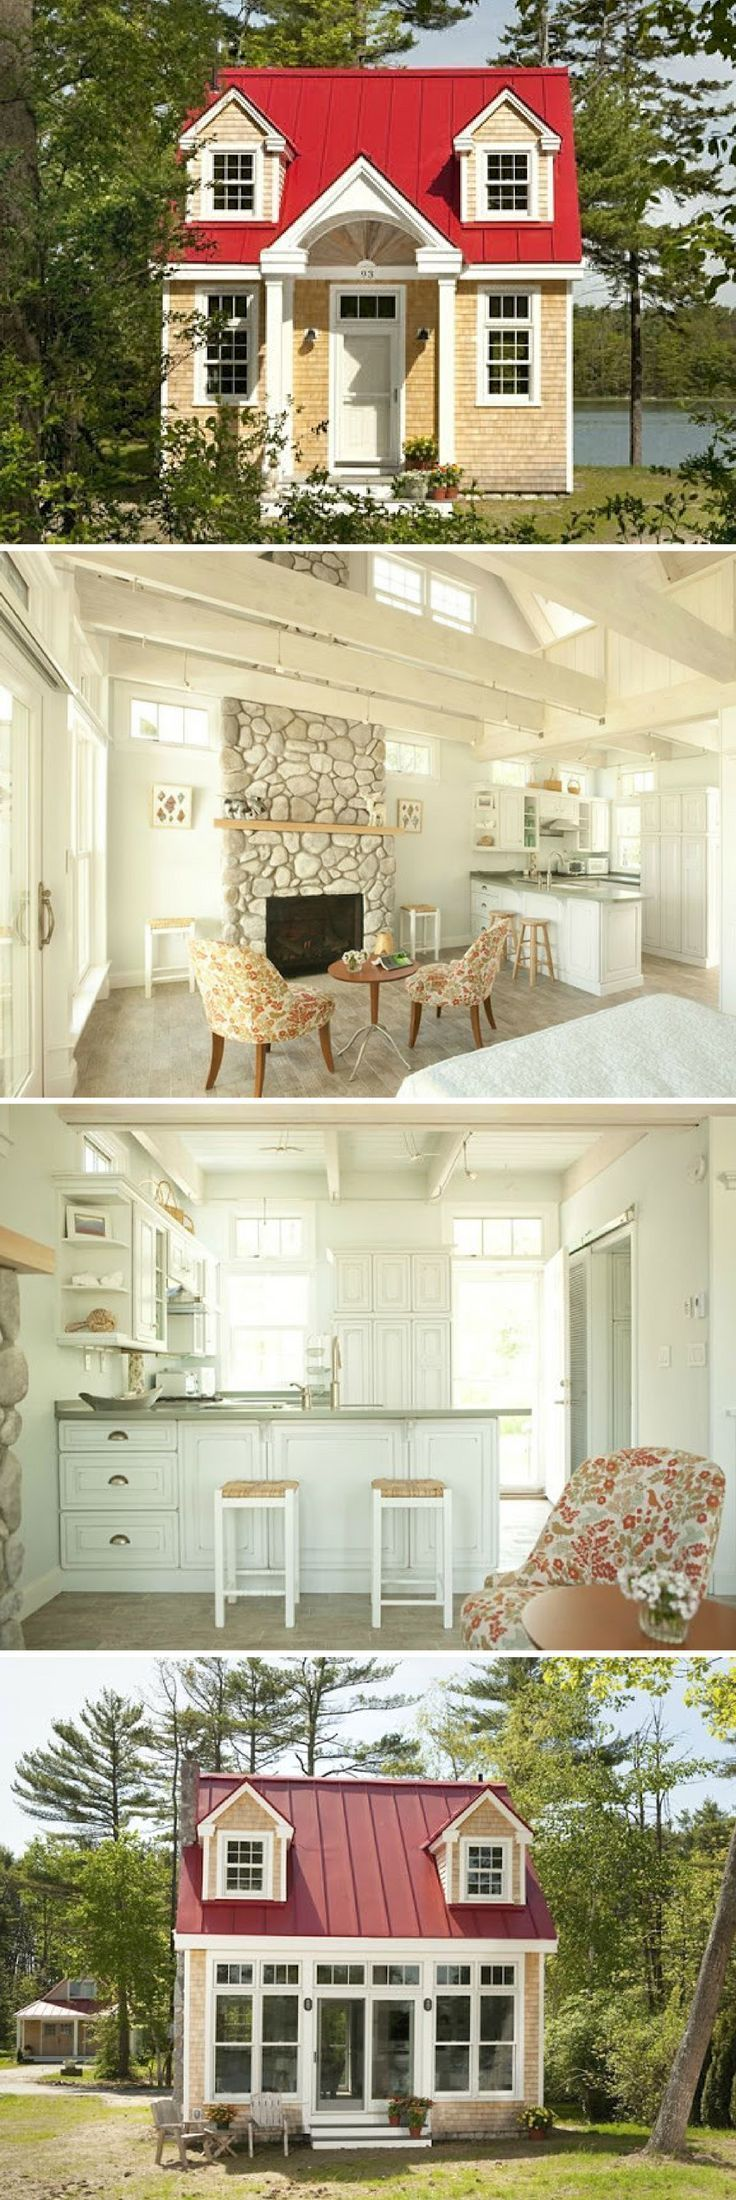 112 best Tiny Houses images on Pinterest | Small houses, Tiny ...